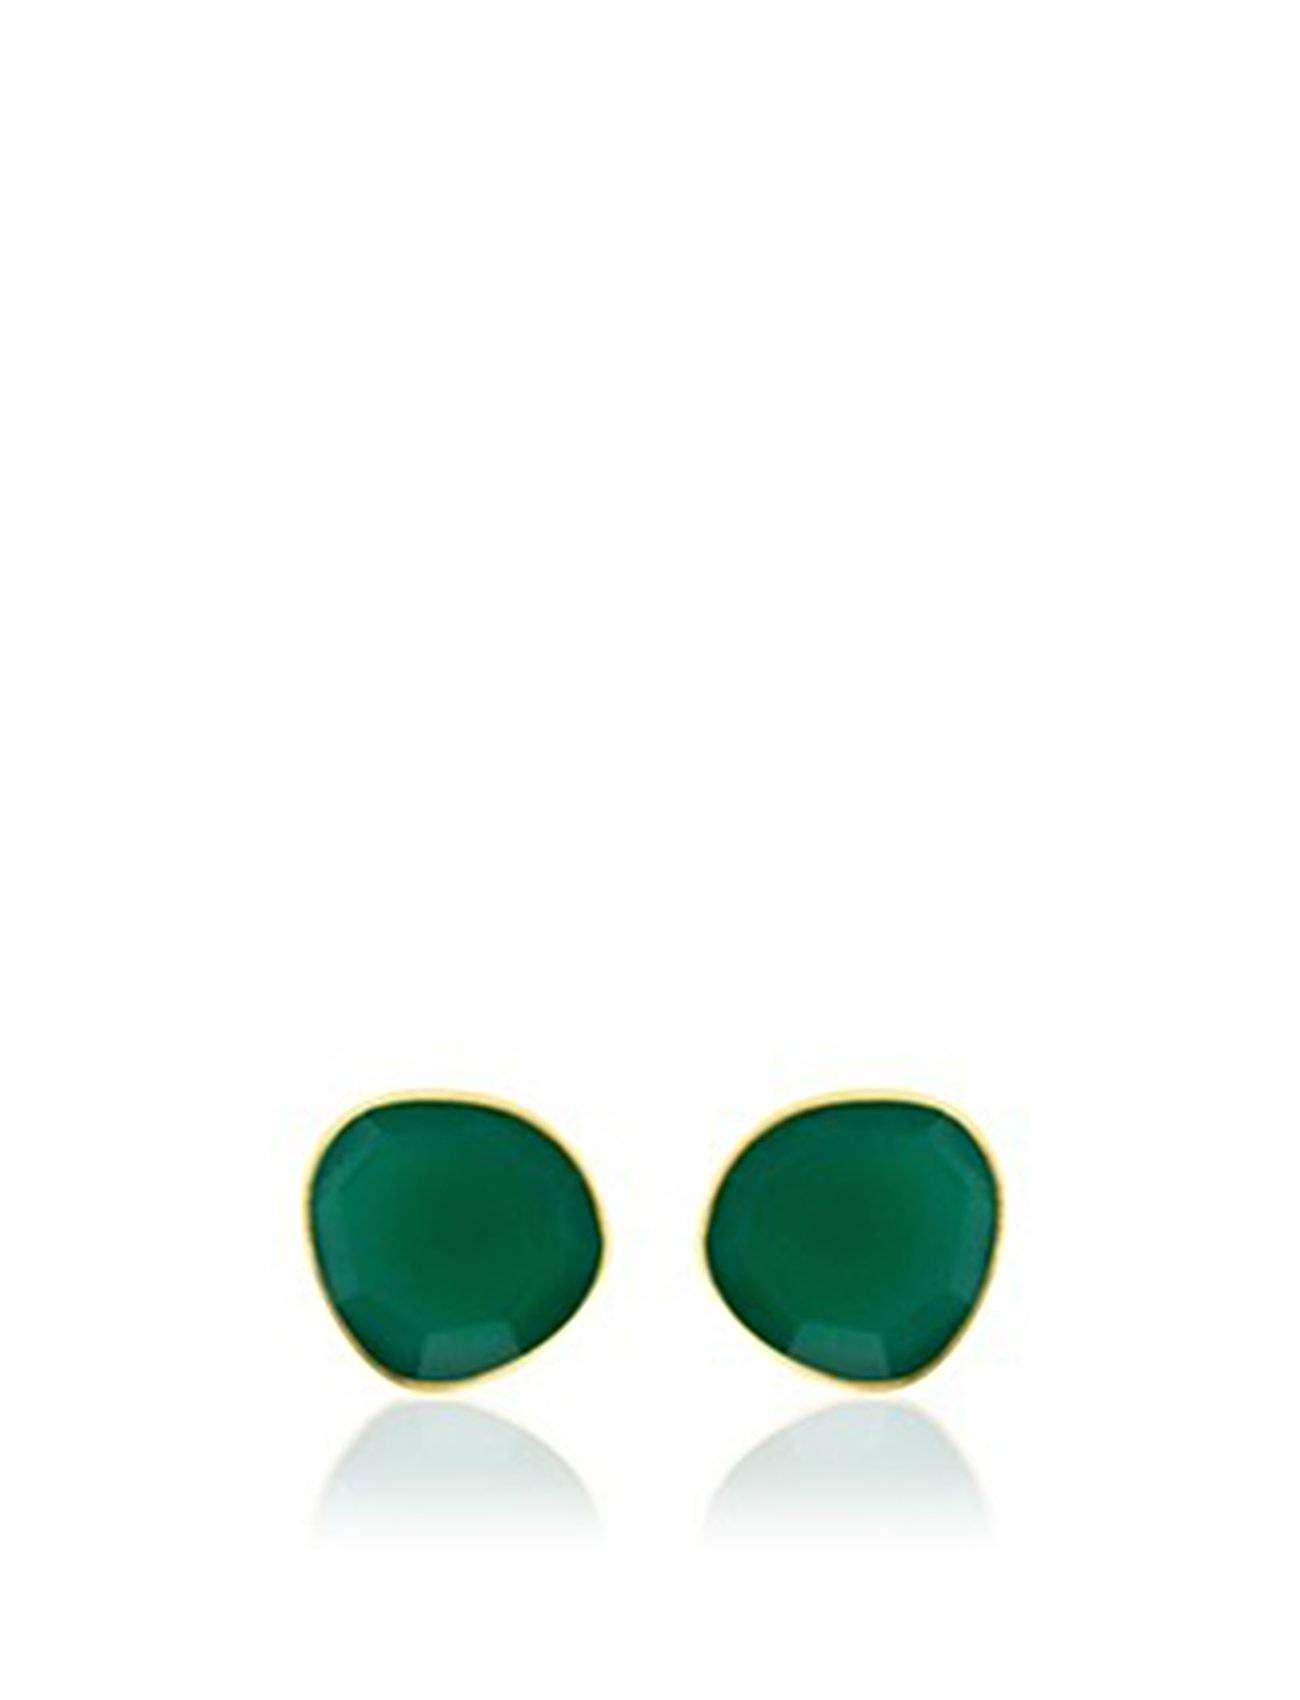 SOPHIE by SOPHIE One Stone Studs